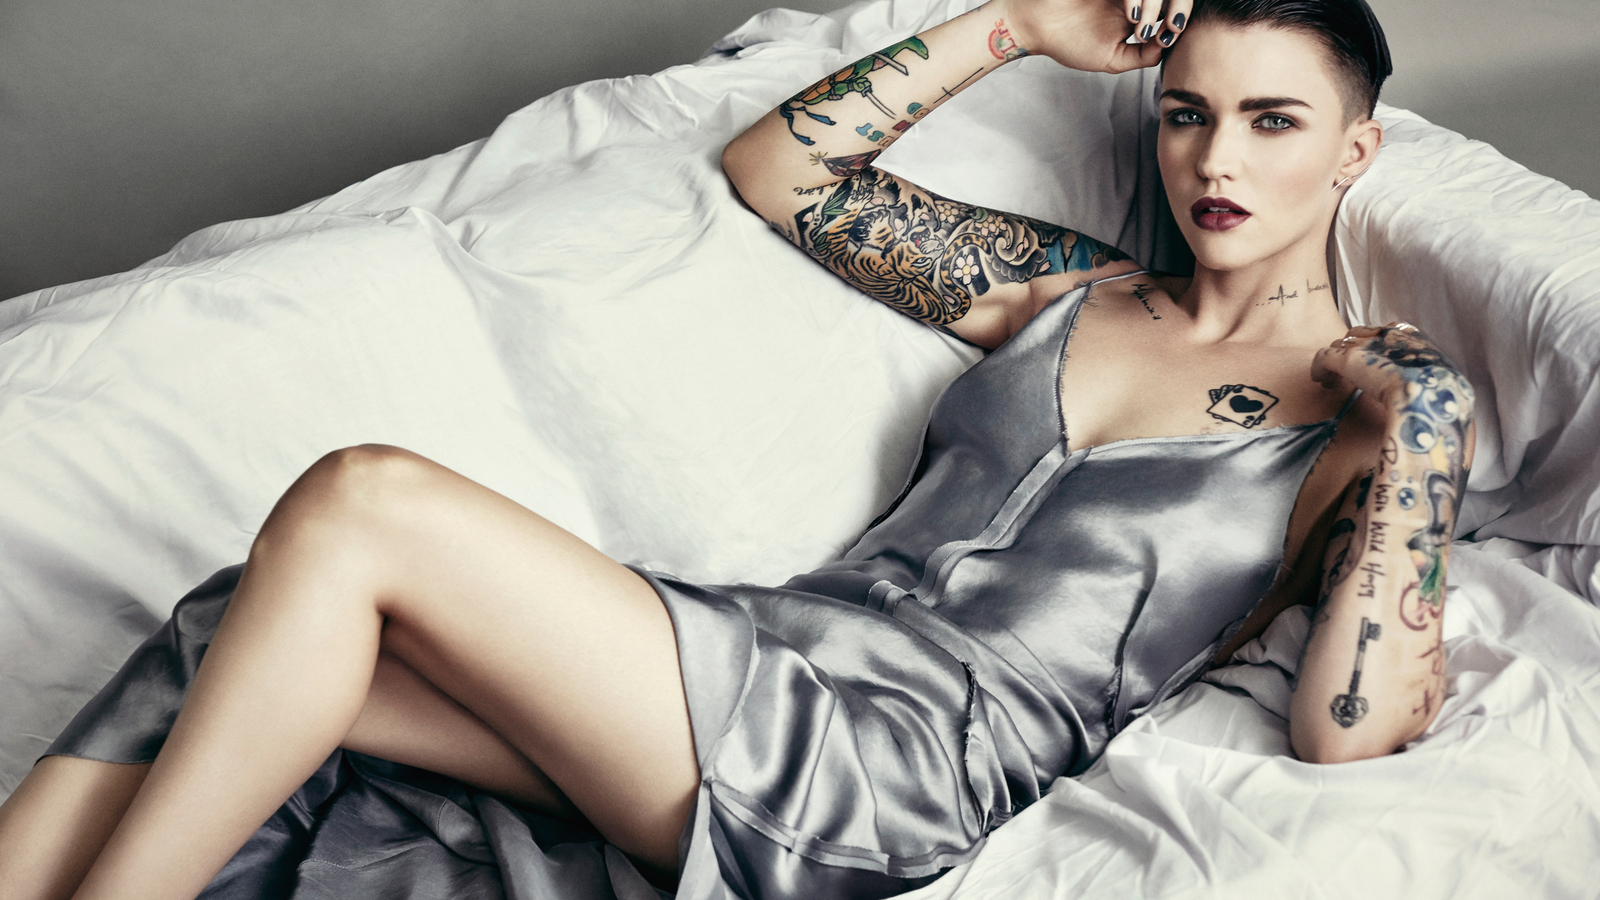 Erotica Ruby Rose nudes (47 photos), Tits, Paparazzi, Feet, butt 2015